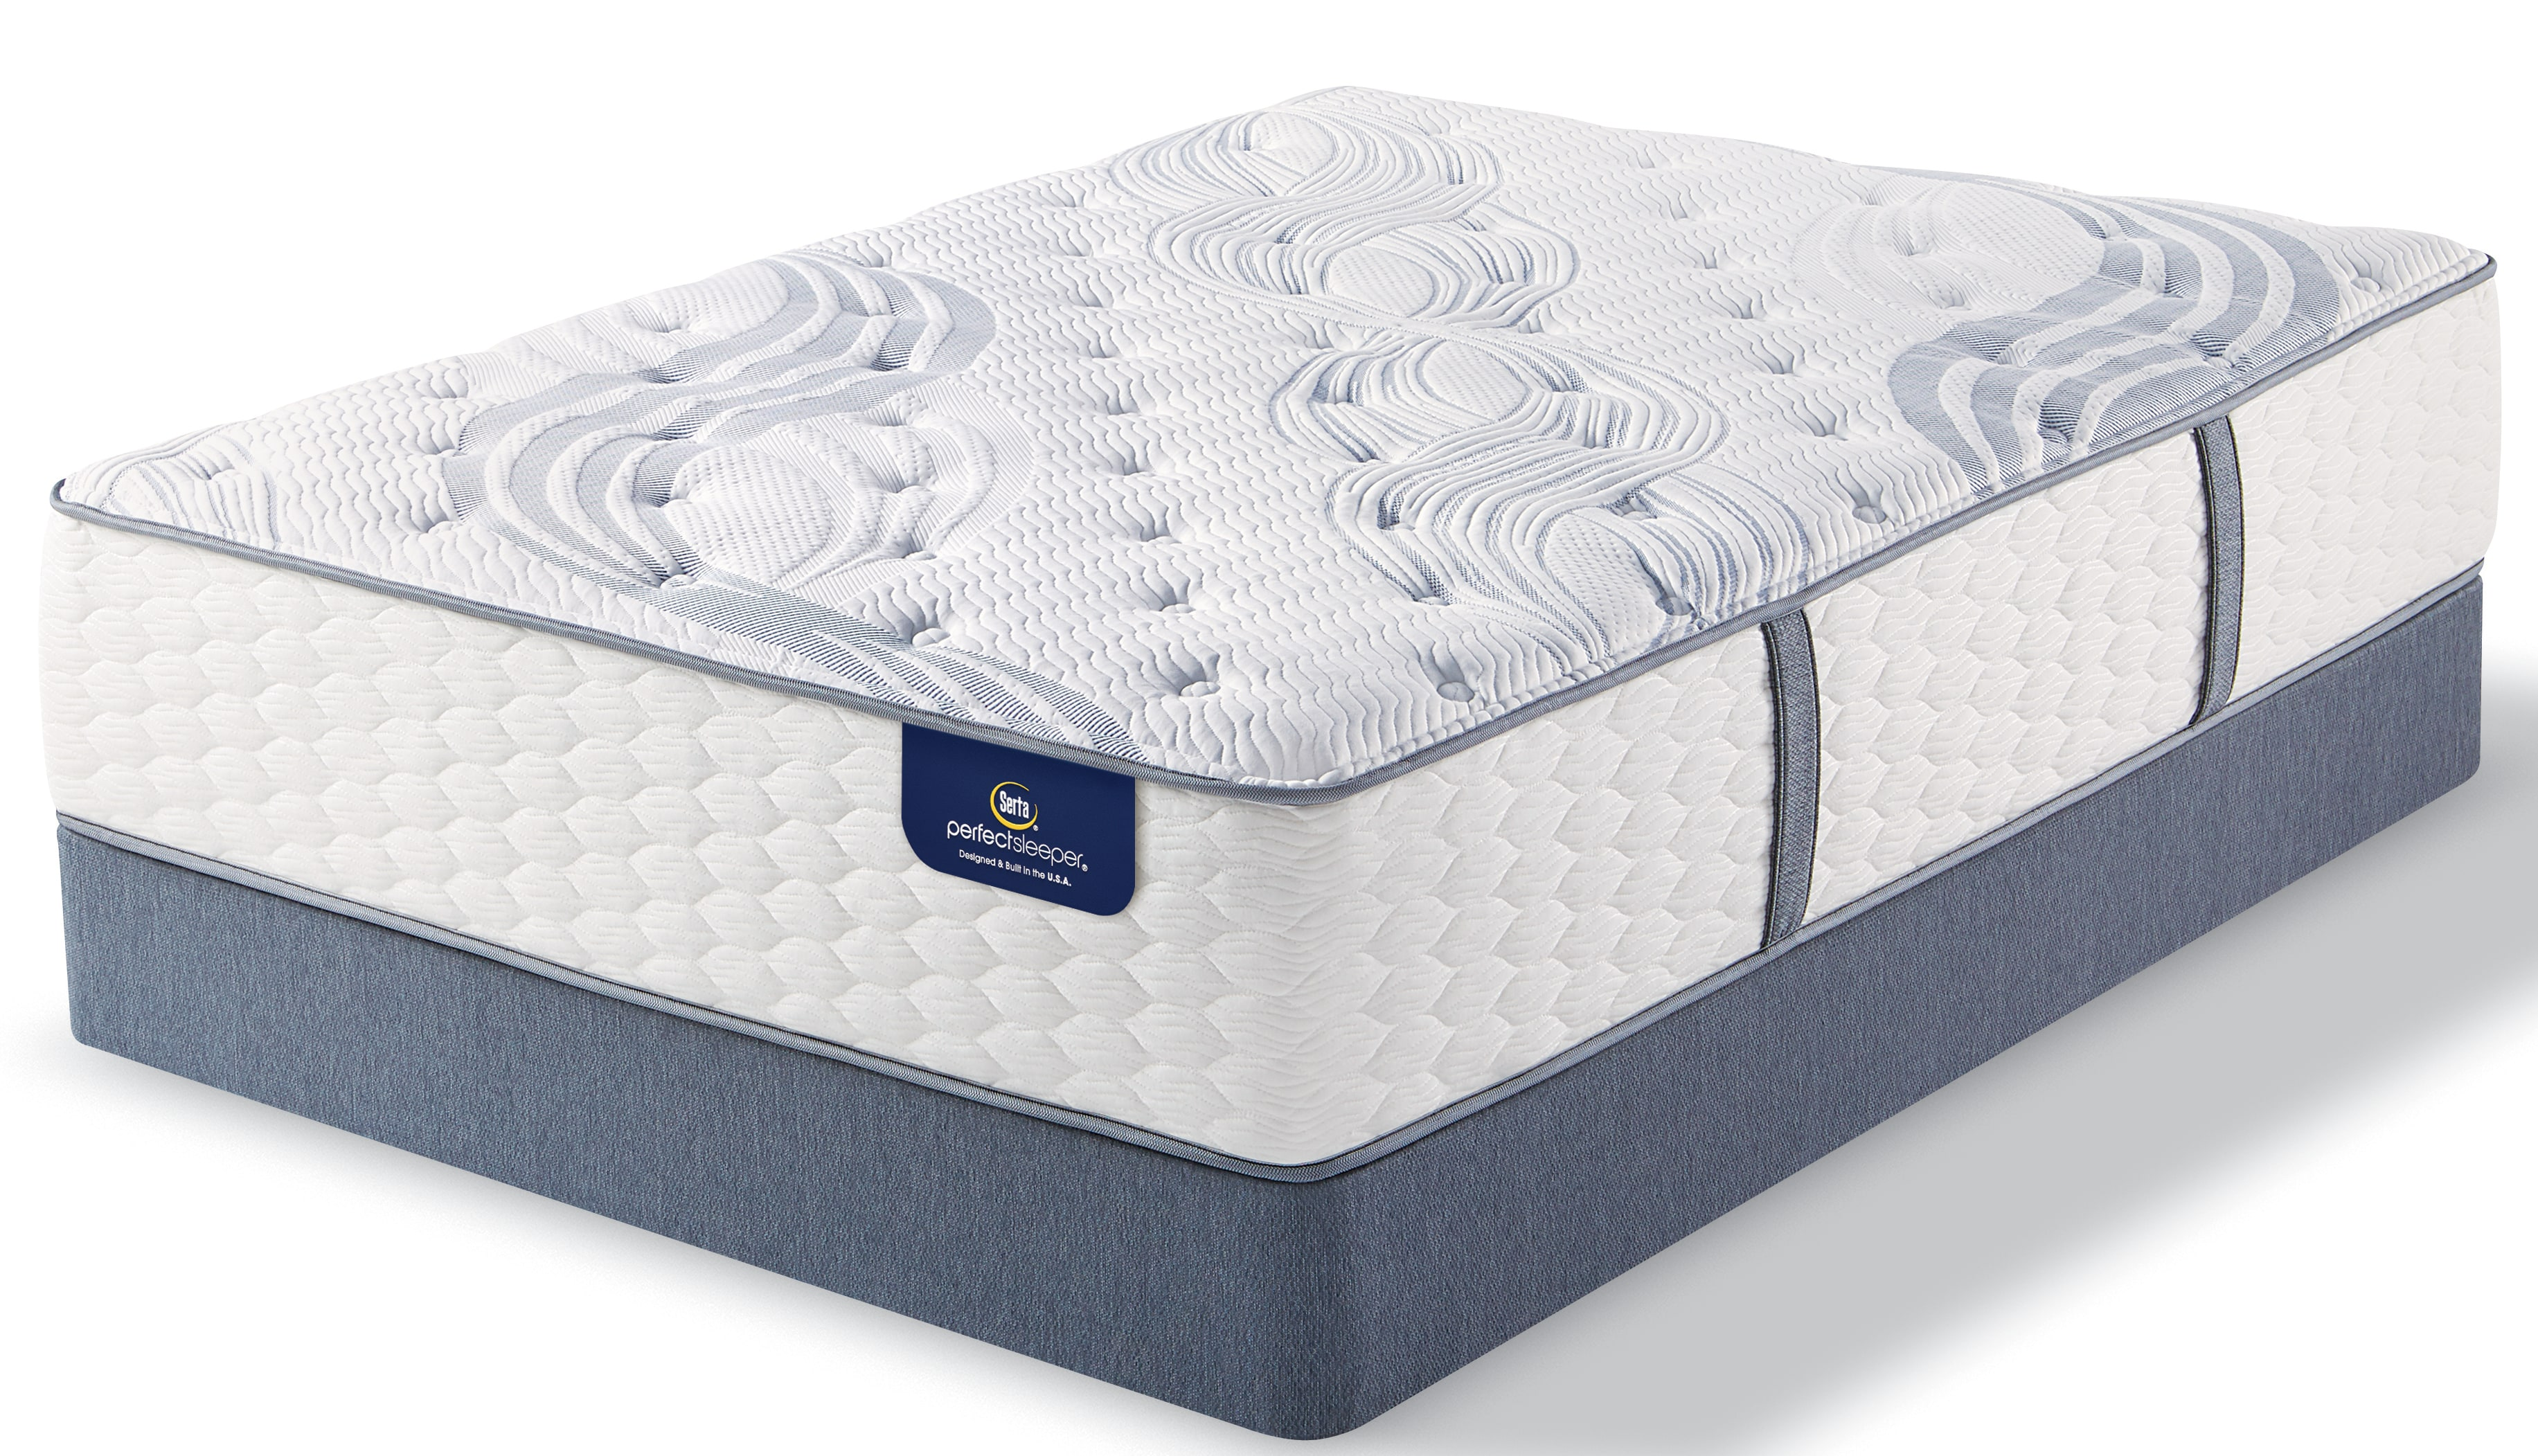 Luxury Firm Twin Mattress and Boxsprings